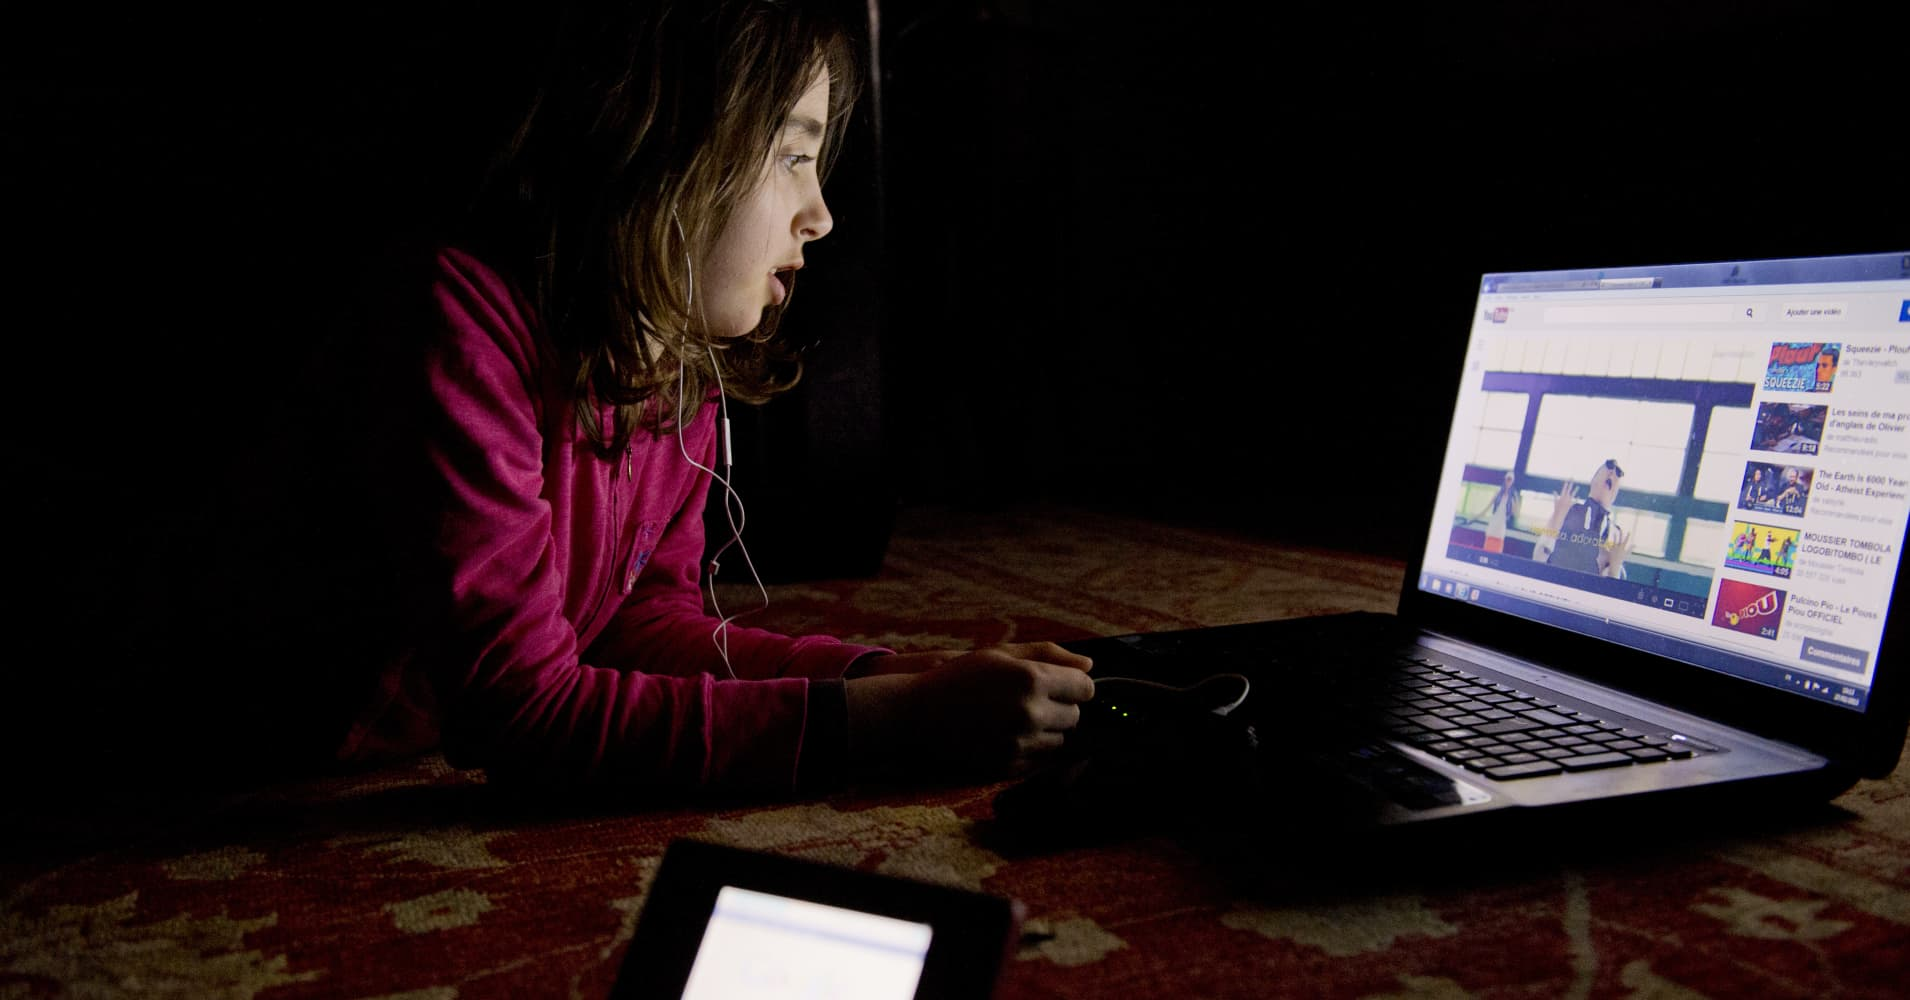 How free hacking tools on the web could be leading kids into cybercrime